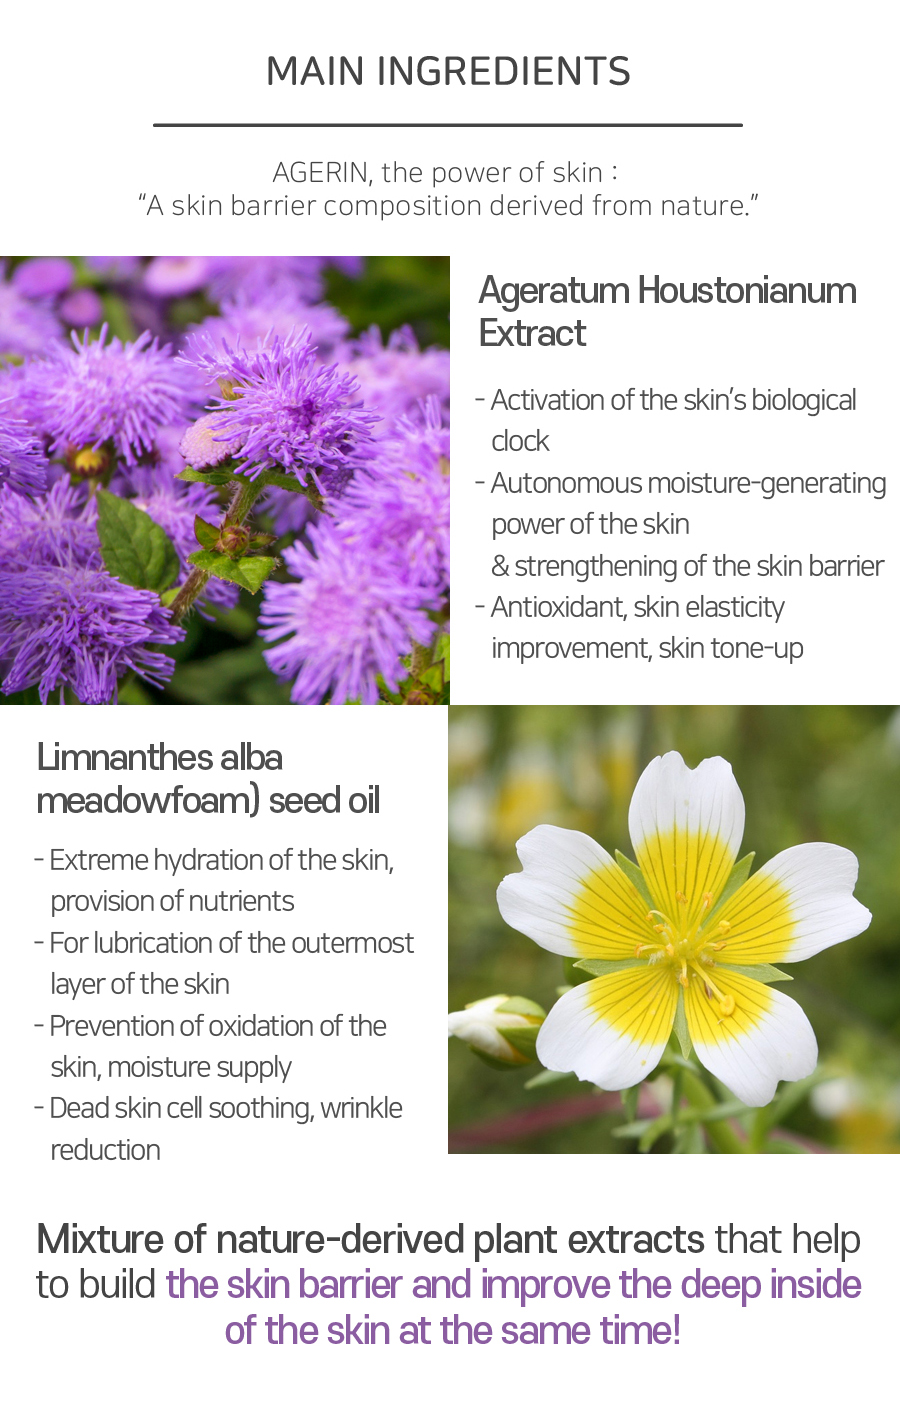 """Main Ingredient : AGERIN, the power of skin: """"A skin barrier composition derived from nature."""" 1. Ageratum Houstonianum Extract - Activation of the skin's biological clock   2. Limnanthes alba (meadowfoam) seed oil - Extreme hydration of the skin, provision of nutrients"""